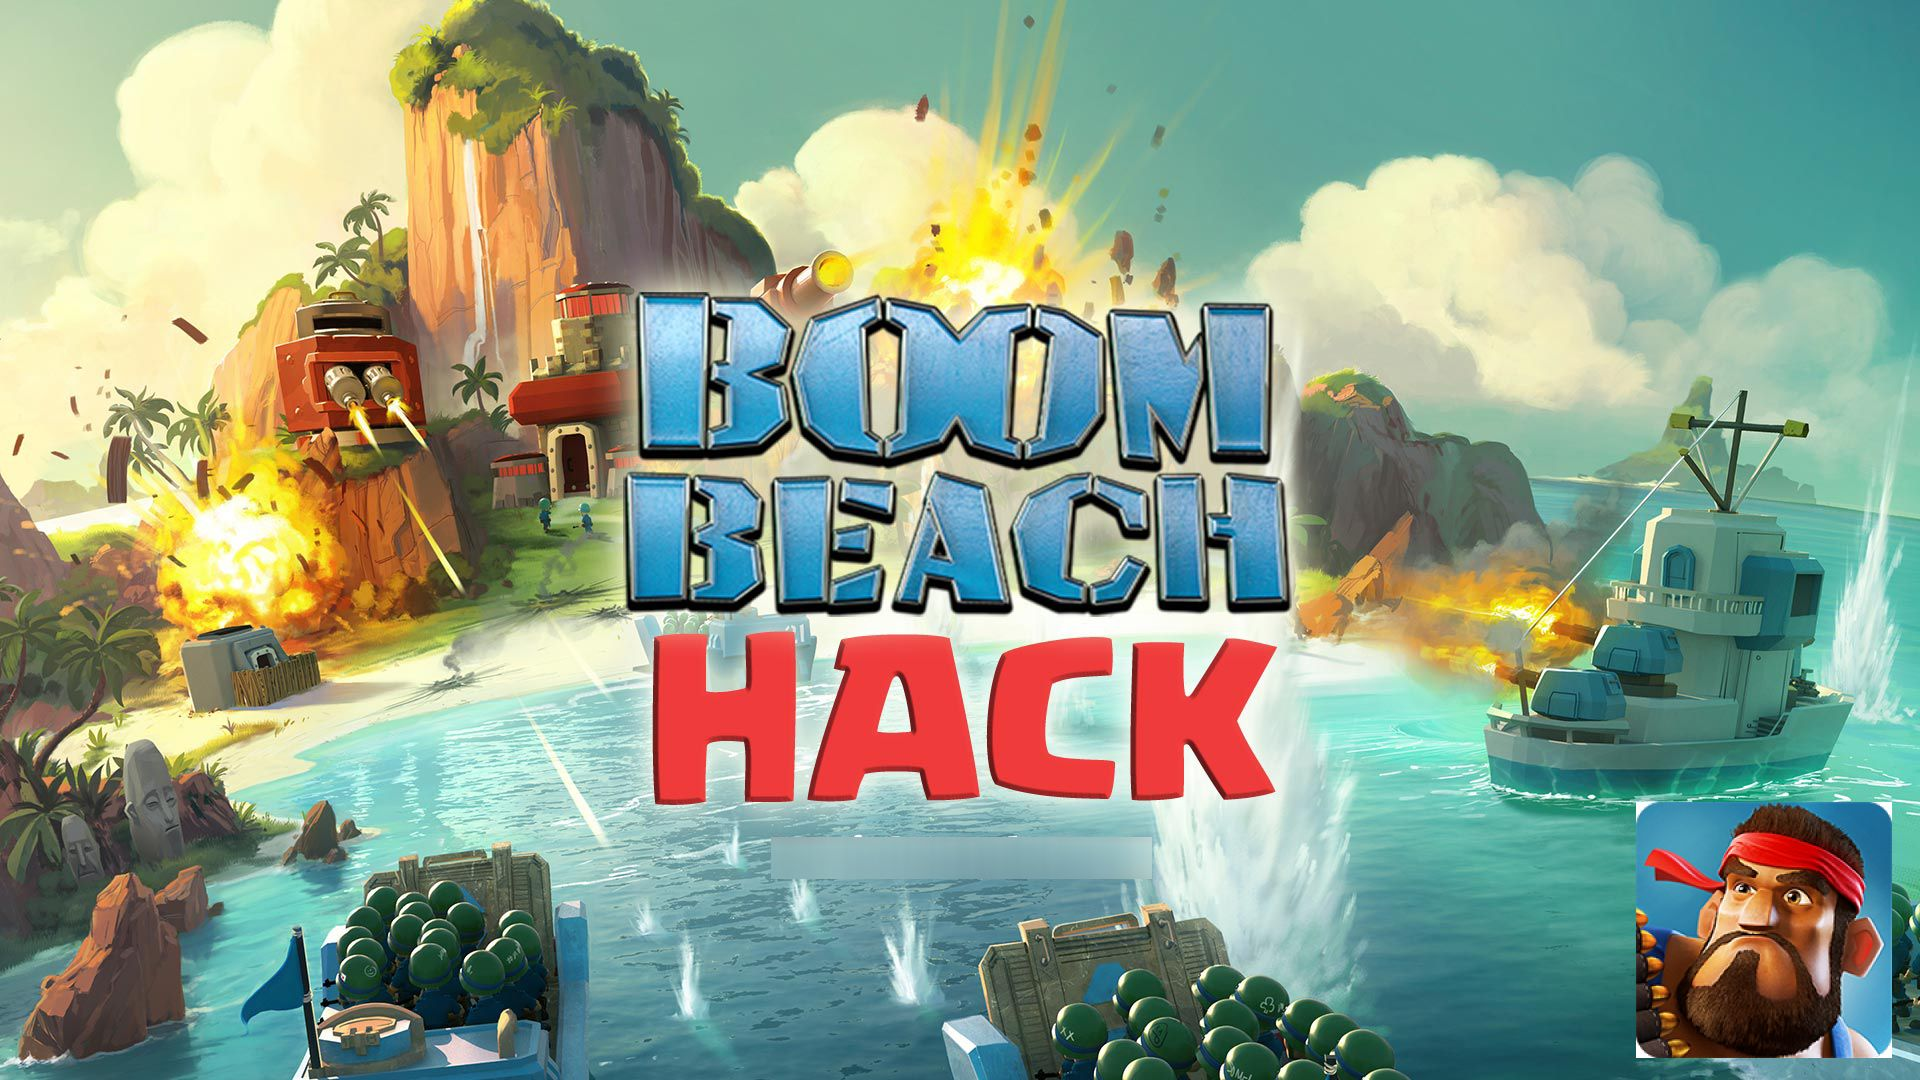 Apk download boom beach hack get gems and cheats updated tool also rh pinterest